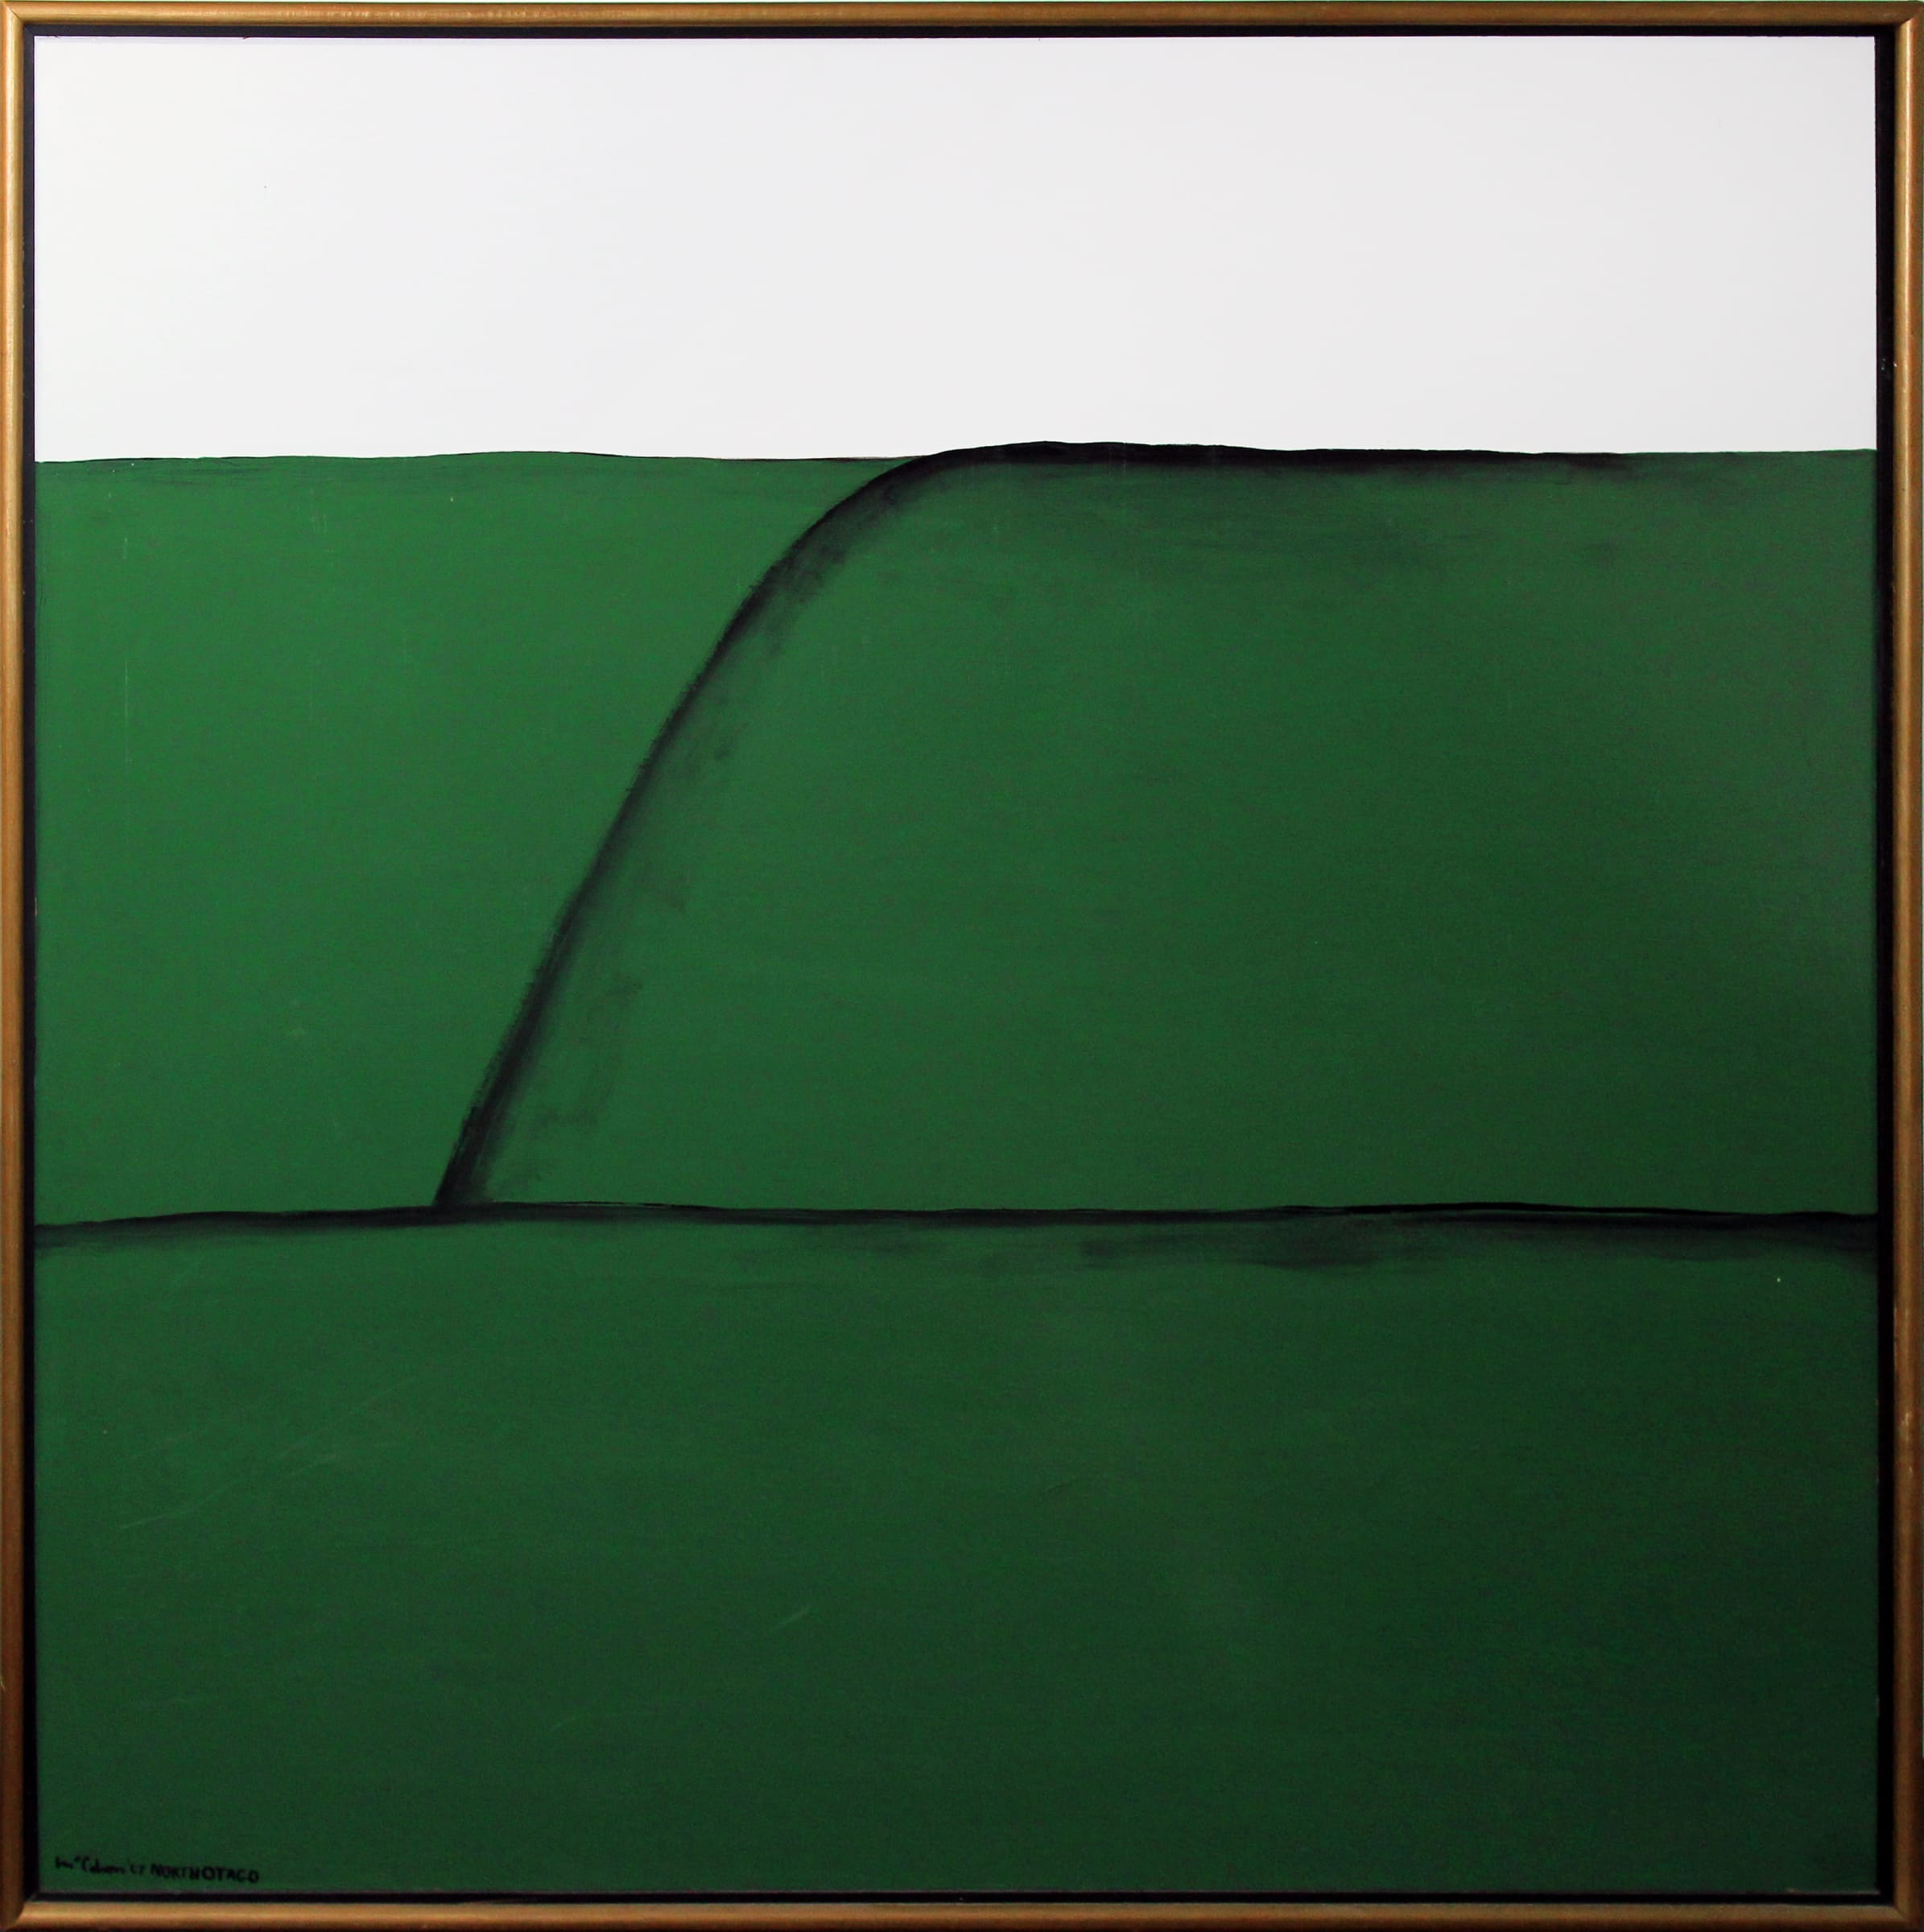 <span class=&#34;link fancybox-details-link&#34;><a href=&#34;/artists/89-colin-mccahon/works/5181-colin-mccahon-north-otago-landscape-5-1967/&#34;>View Detail Page</a></span><div class=&#34;artist&#34;><strong>Colin McCAHON</strong></div> <div class=&#34;title&#34;><em>North Otago Landscape 5</em>, 1967</div> <div class=&#34;medium&#34;>Oil on hardboard</div> <div class=&#34;dimensions&#34;>47.7 x 47.2 in<br />121.2 x 120 cm</div>